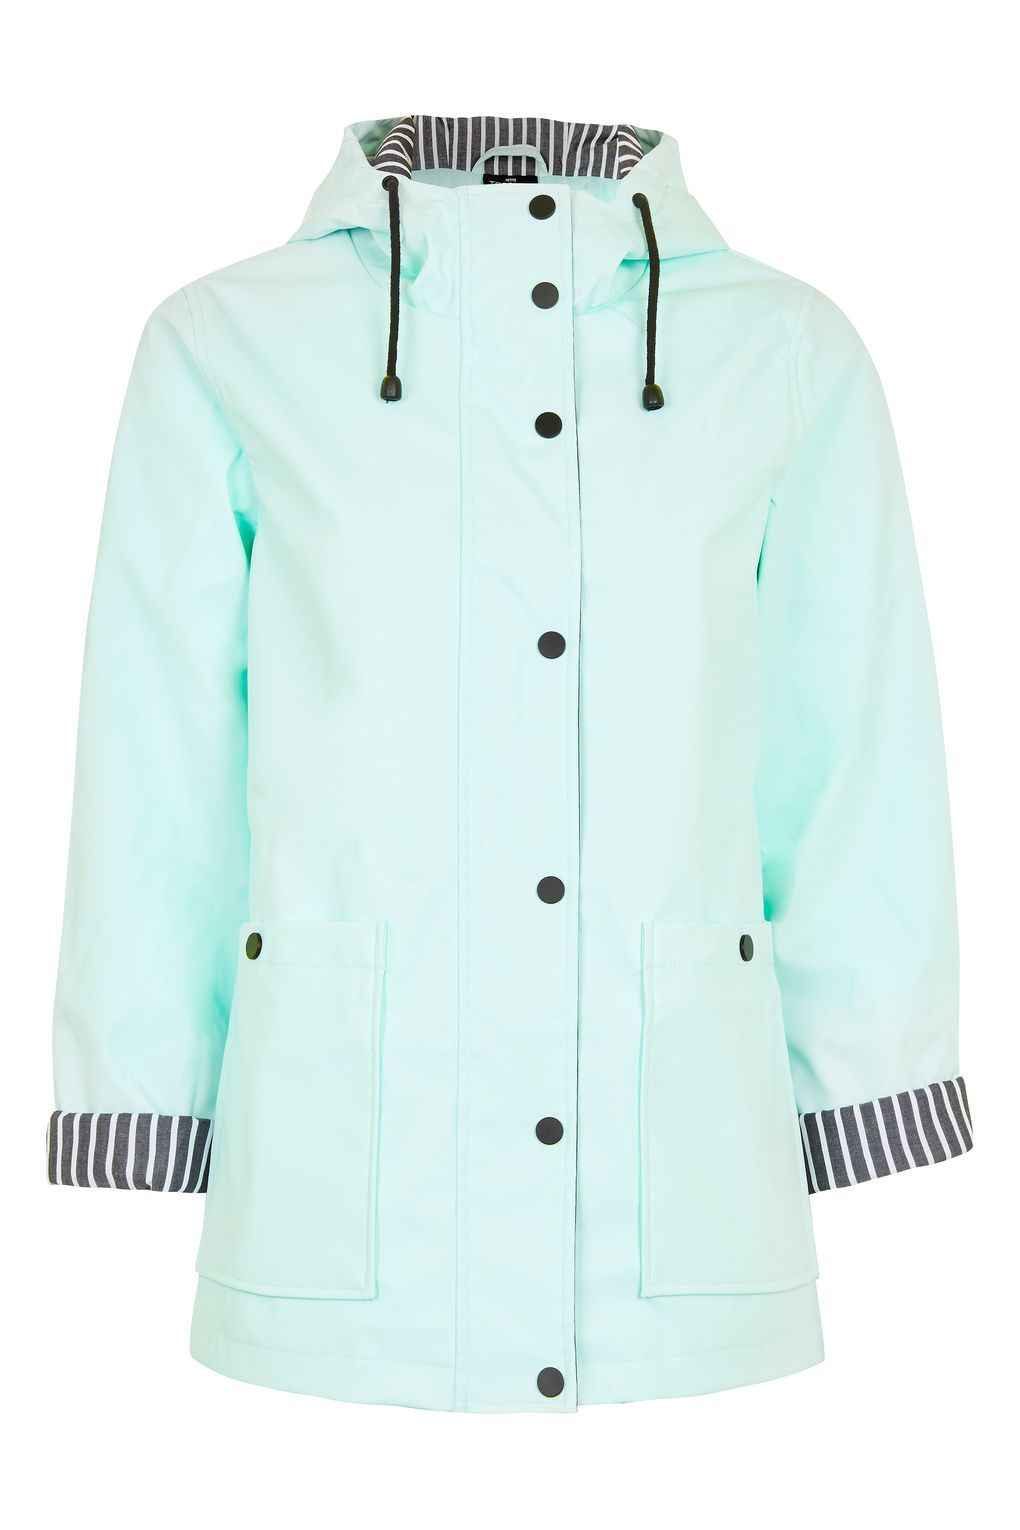 New Womens PU Rubber Hooded Festival Raincoat Mac with Drawcord Ladies Jacket